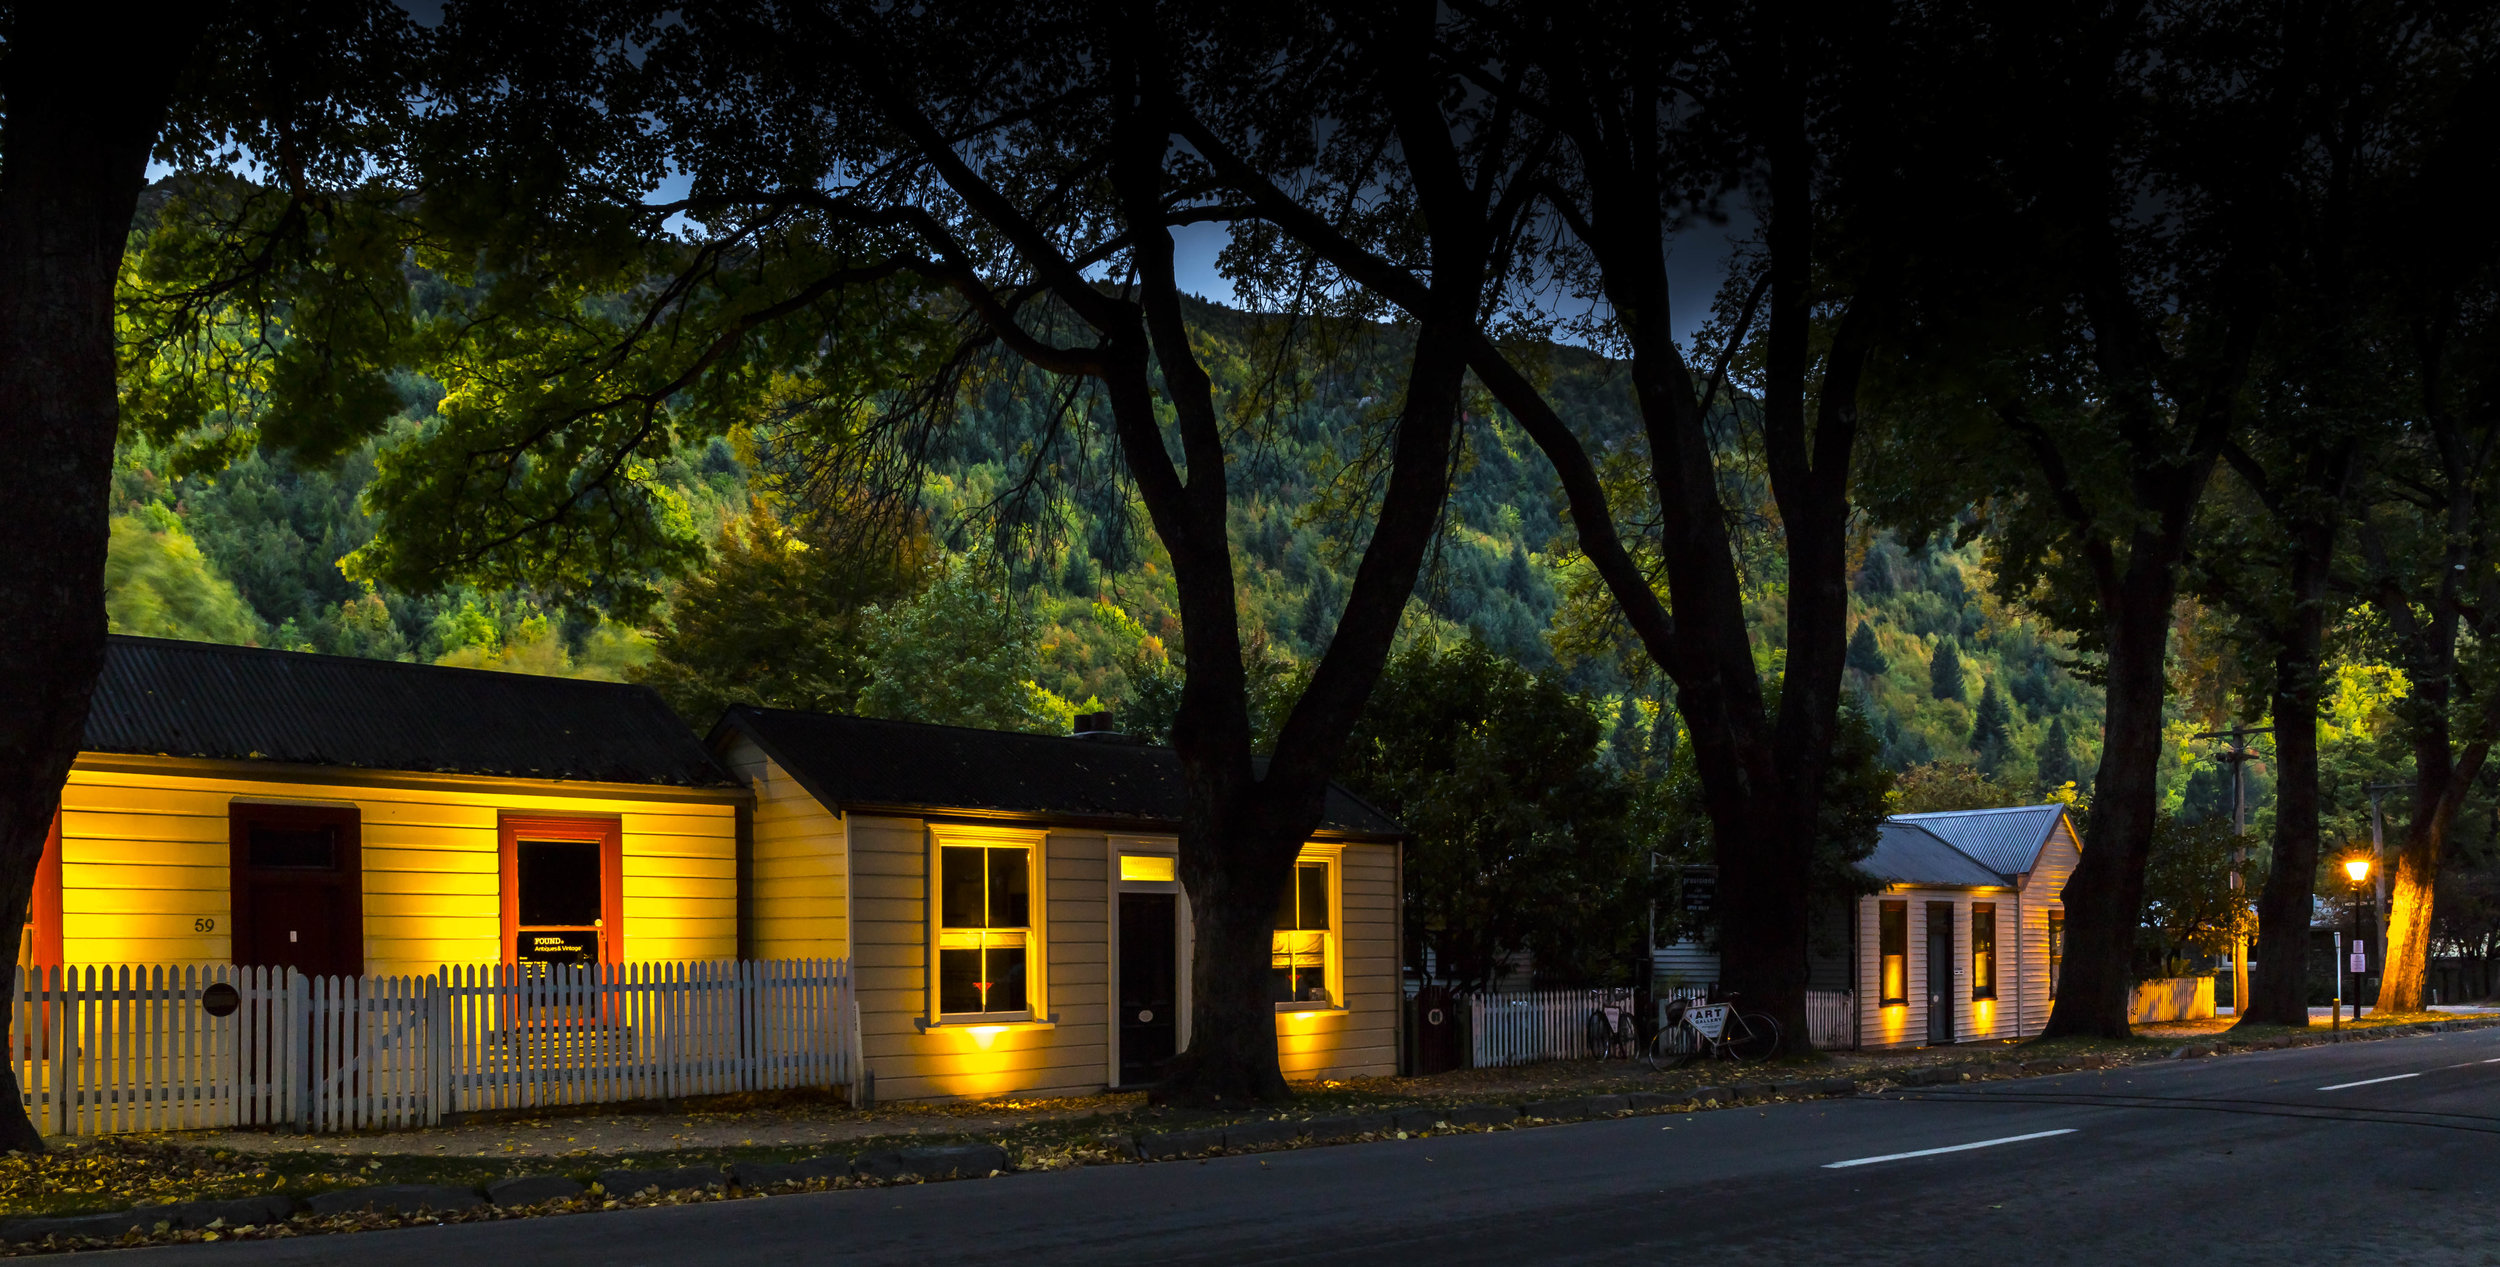 Arrowtown's Heritage Building lighting project